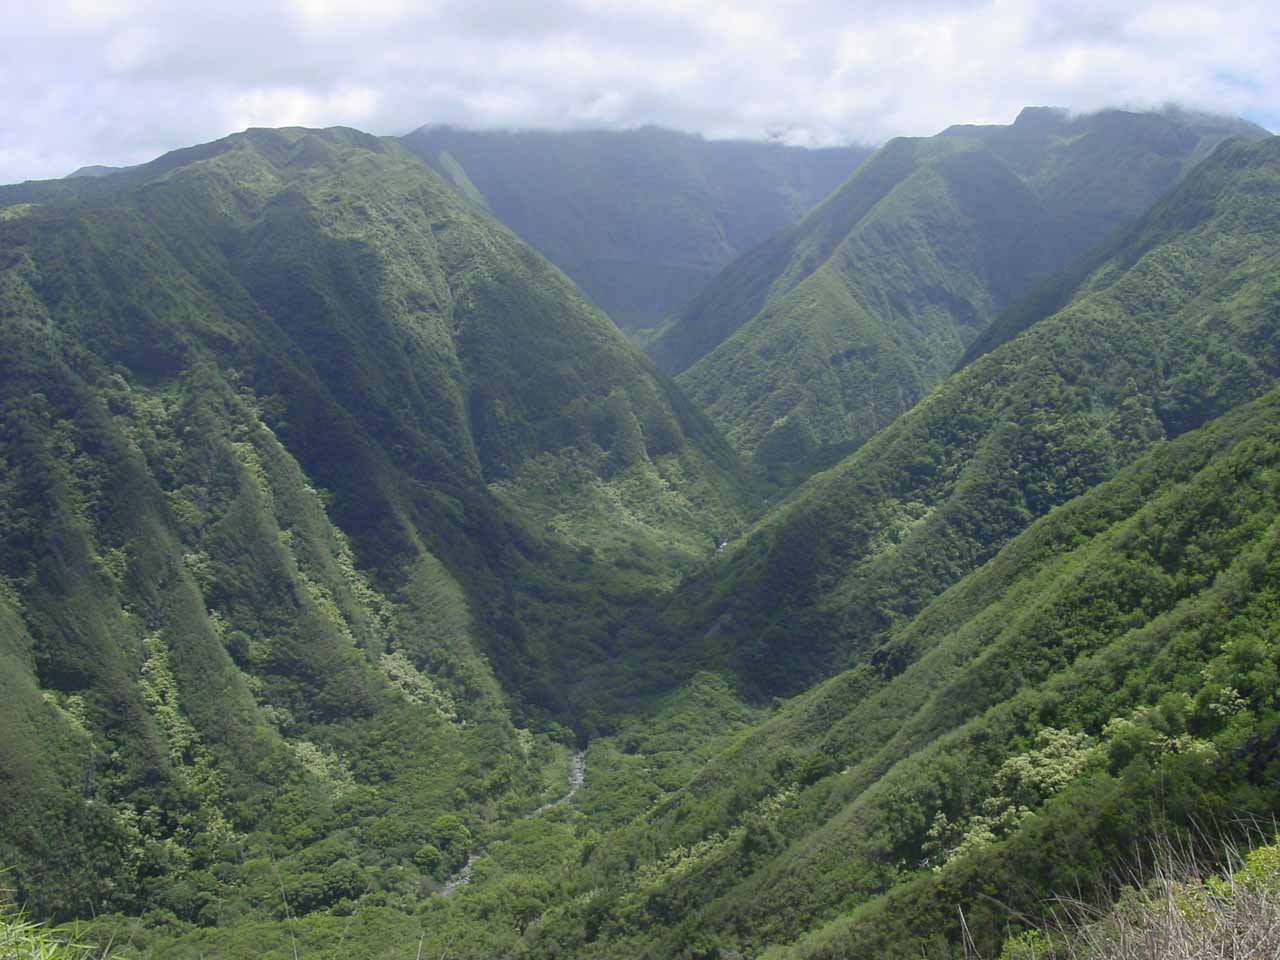 Waihe'e Valley Overlook